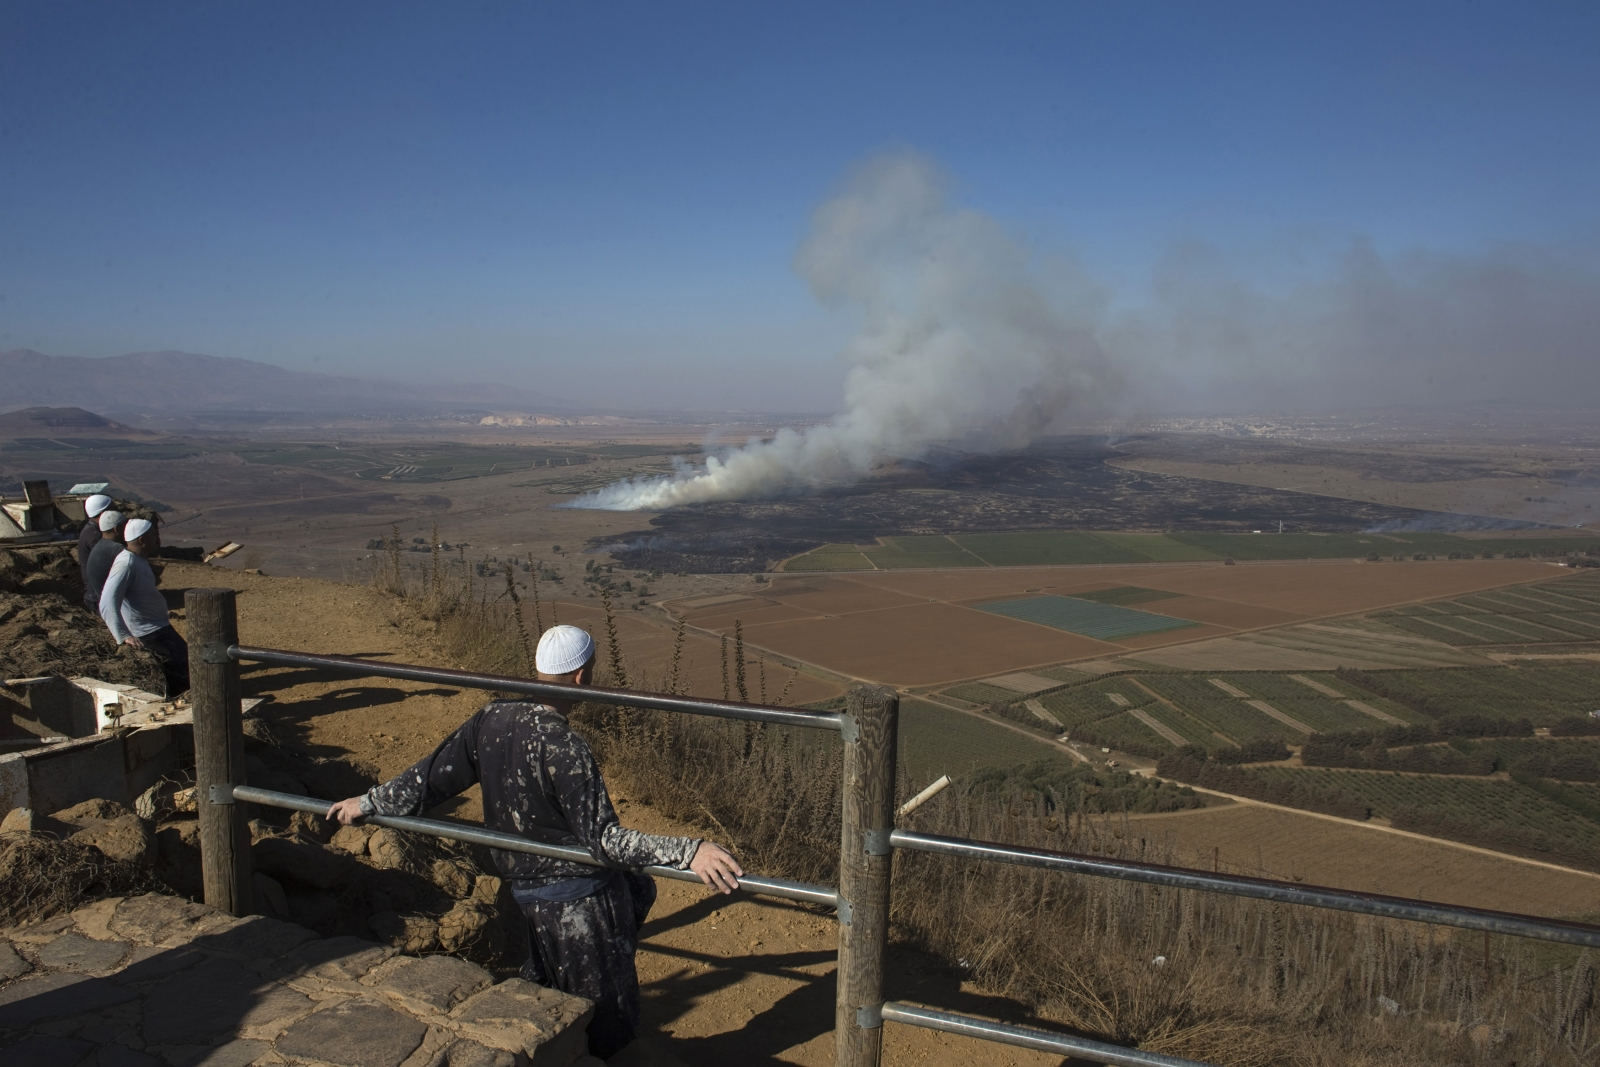 Syria: 43 UN Peacekeepers Seized by 'Armed Group' in Golan Heights